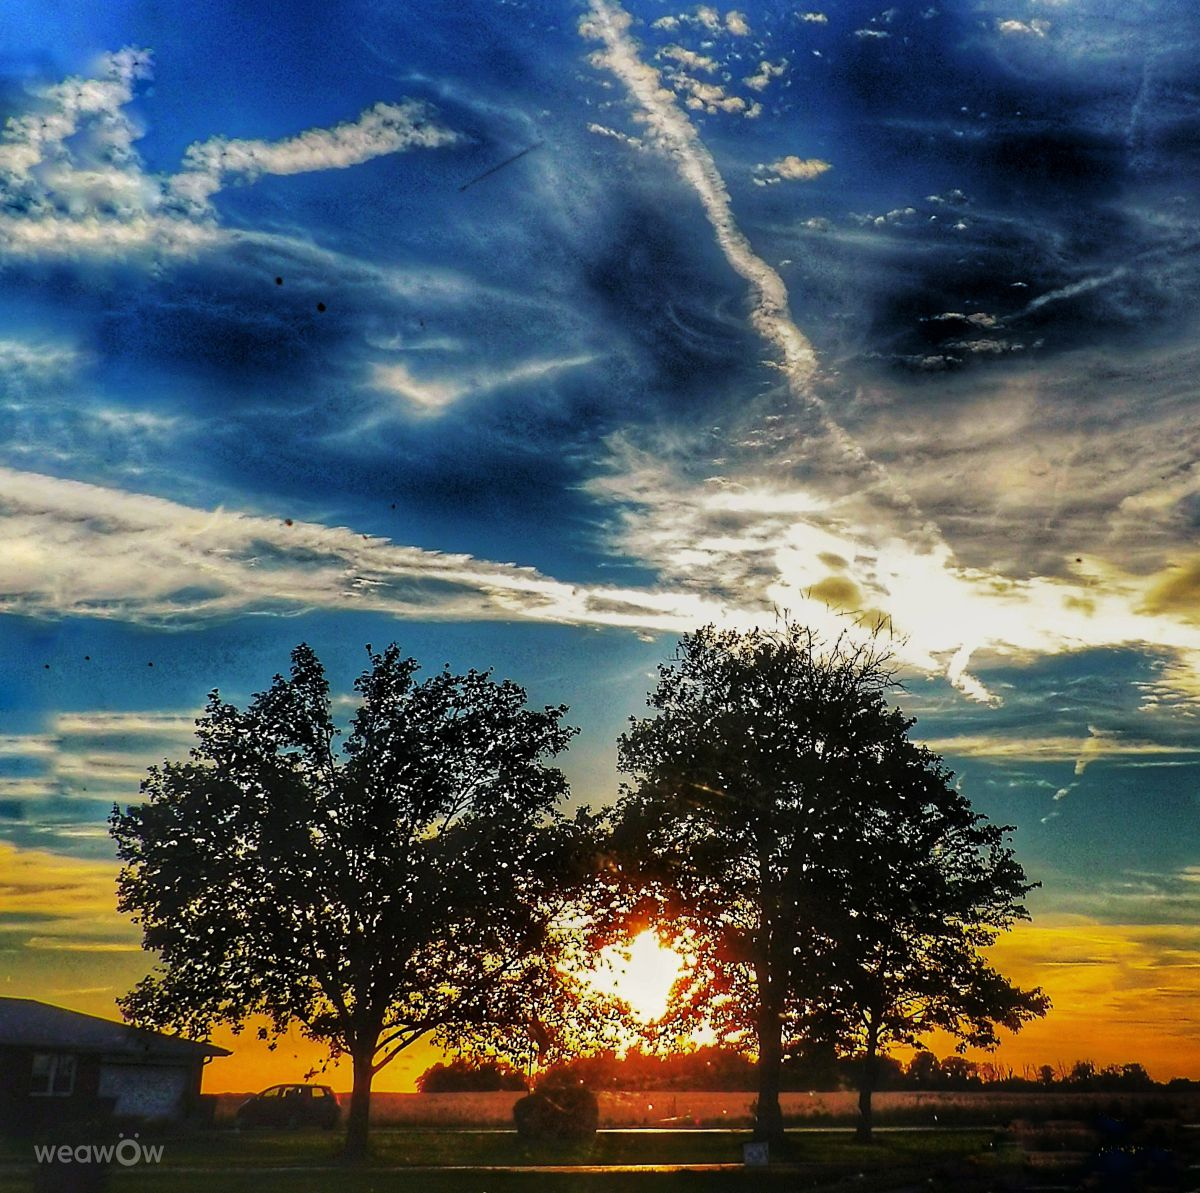 Weather Photos in Fountaintown. Weather forecasts with beautiful photos by Threnody